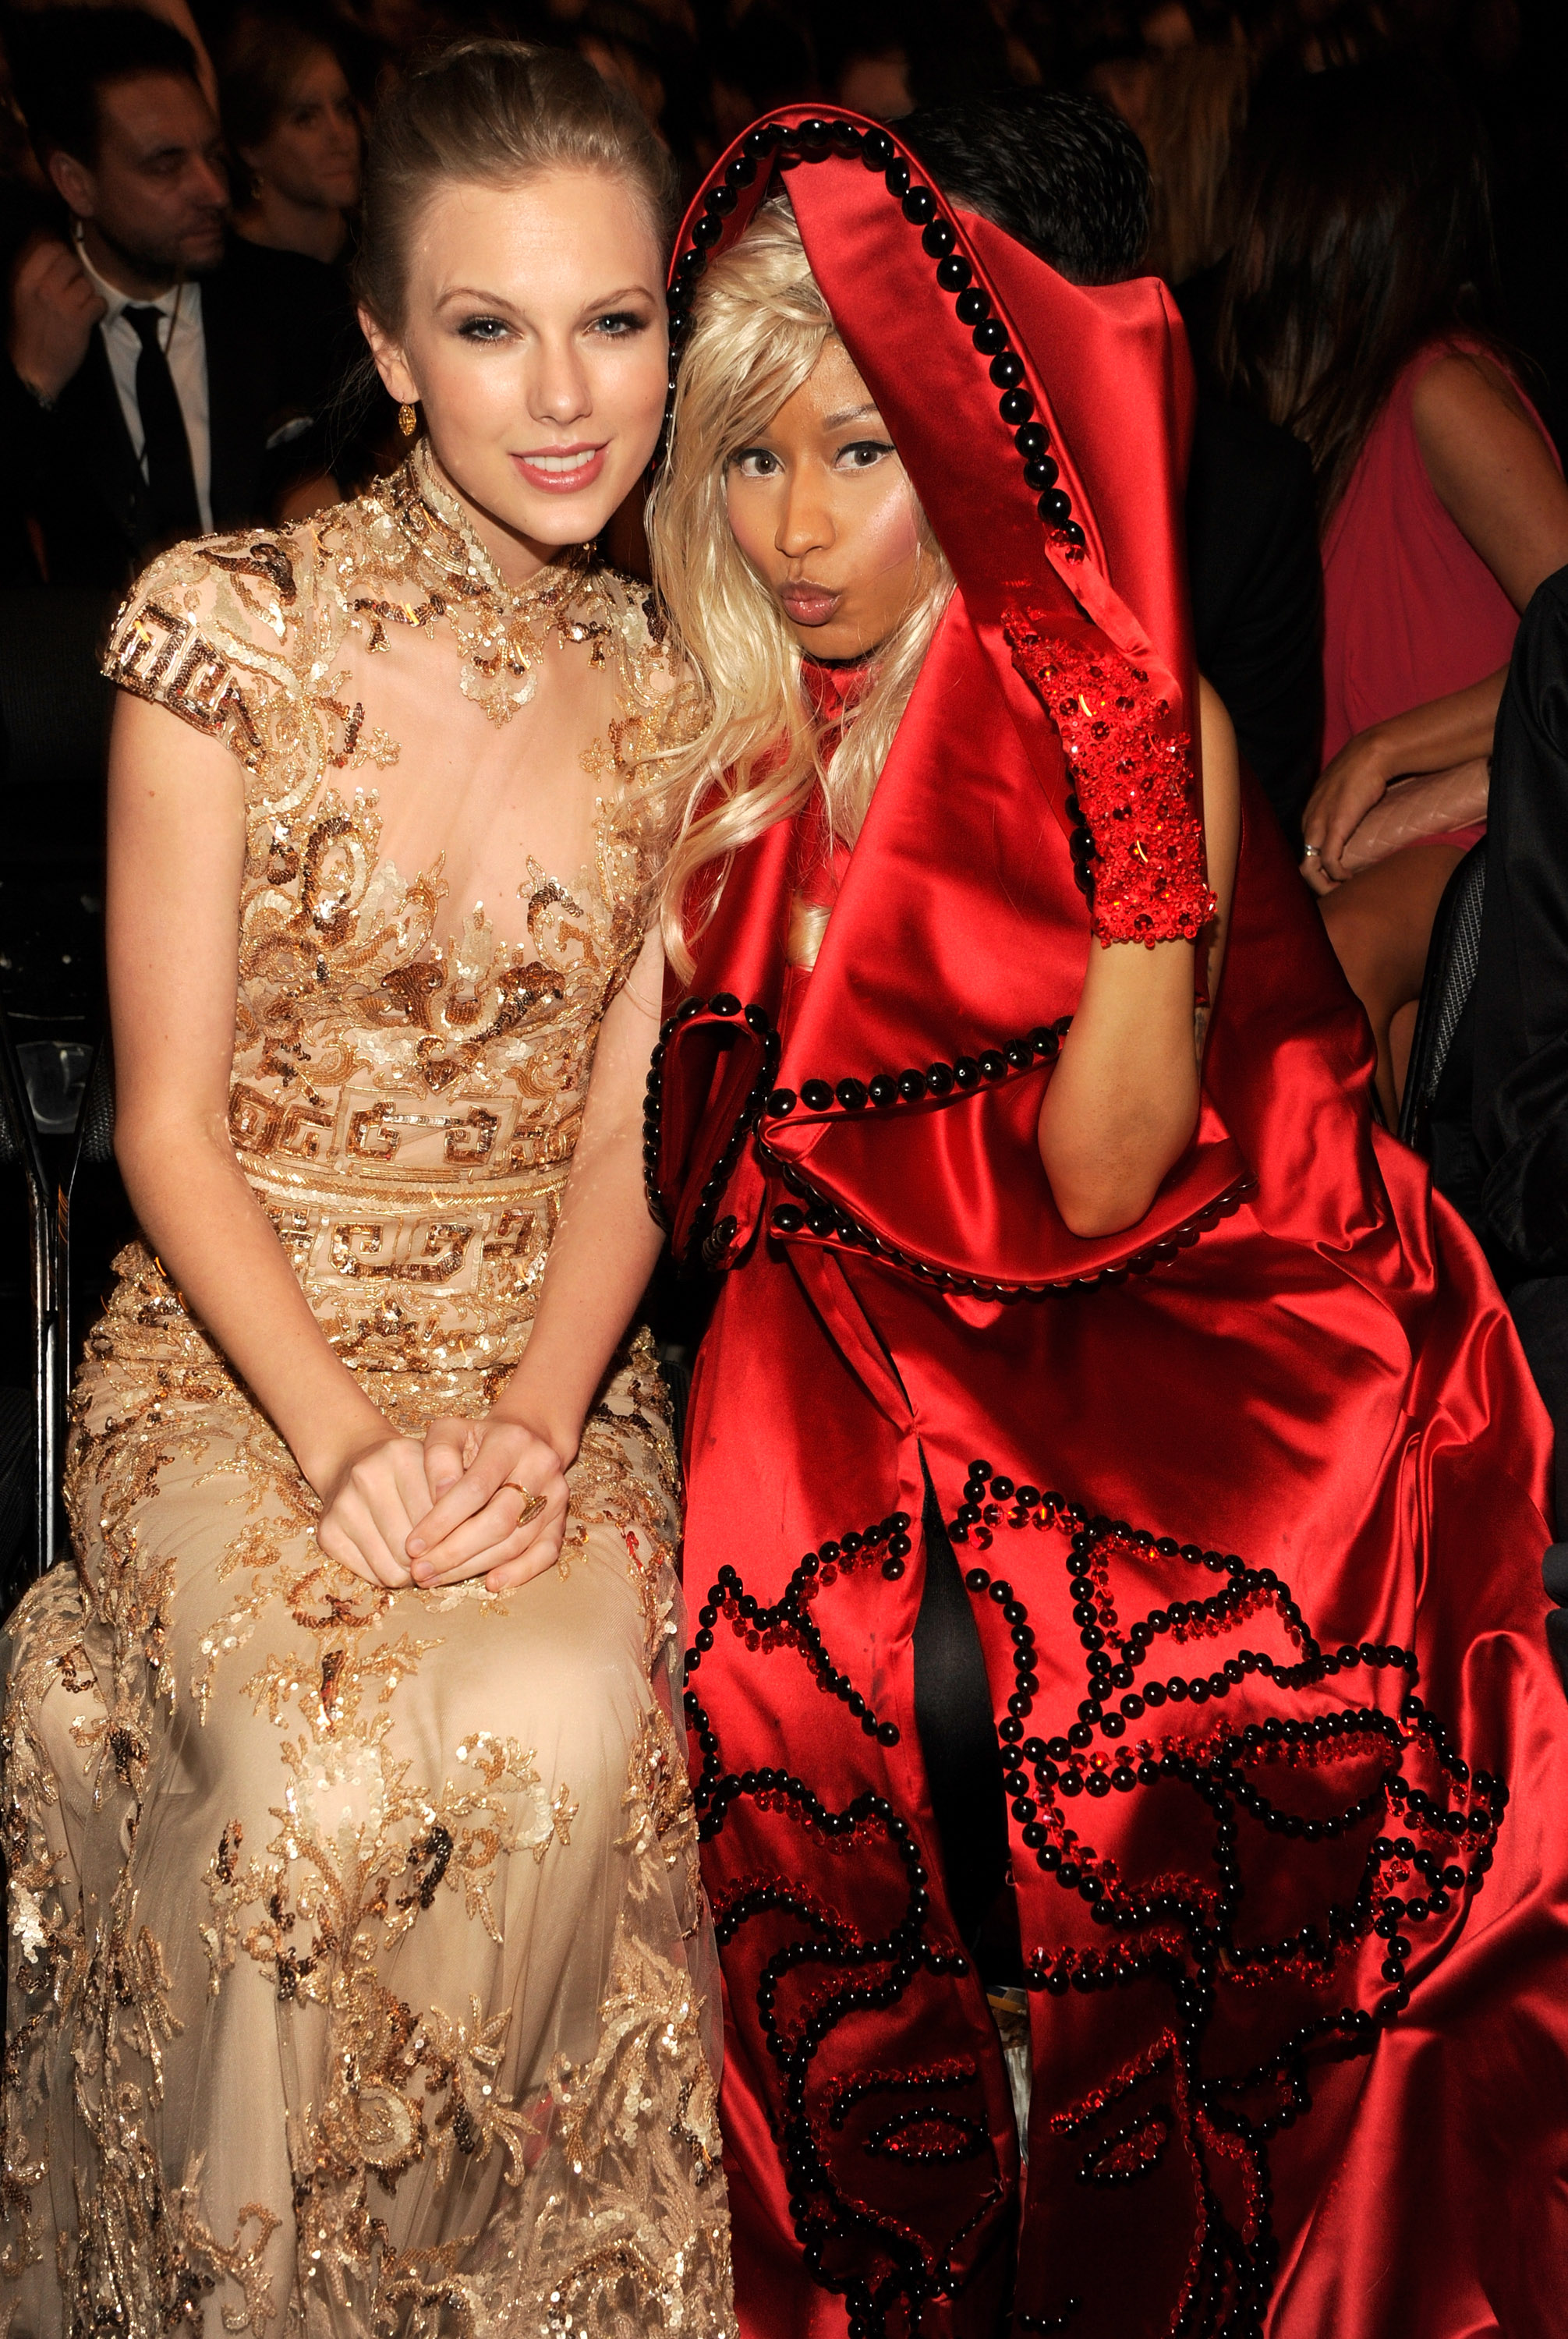 When Taylor Swift and Nicki Minaj Twitter Beef, Other Celebrities Inject Themselves Into the Fray